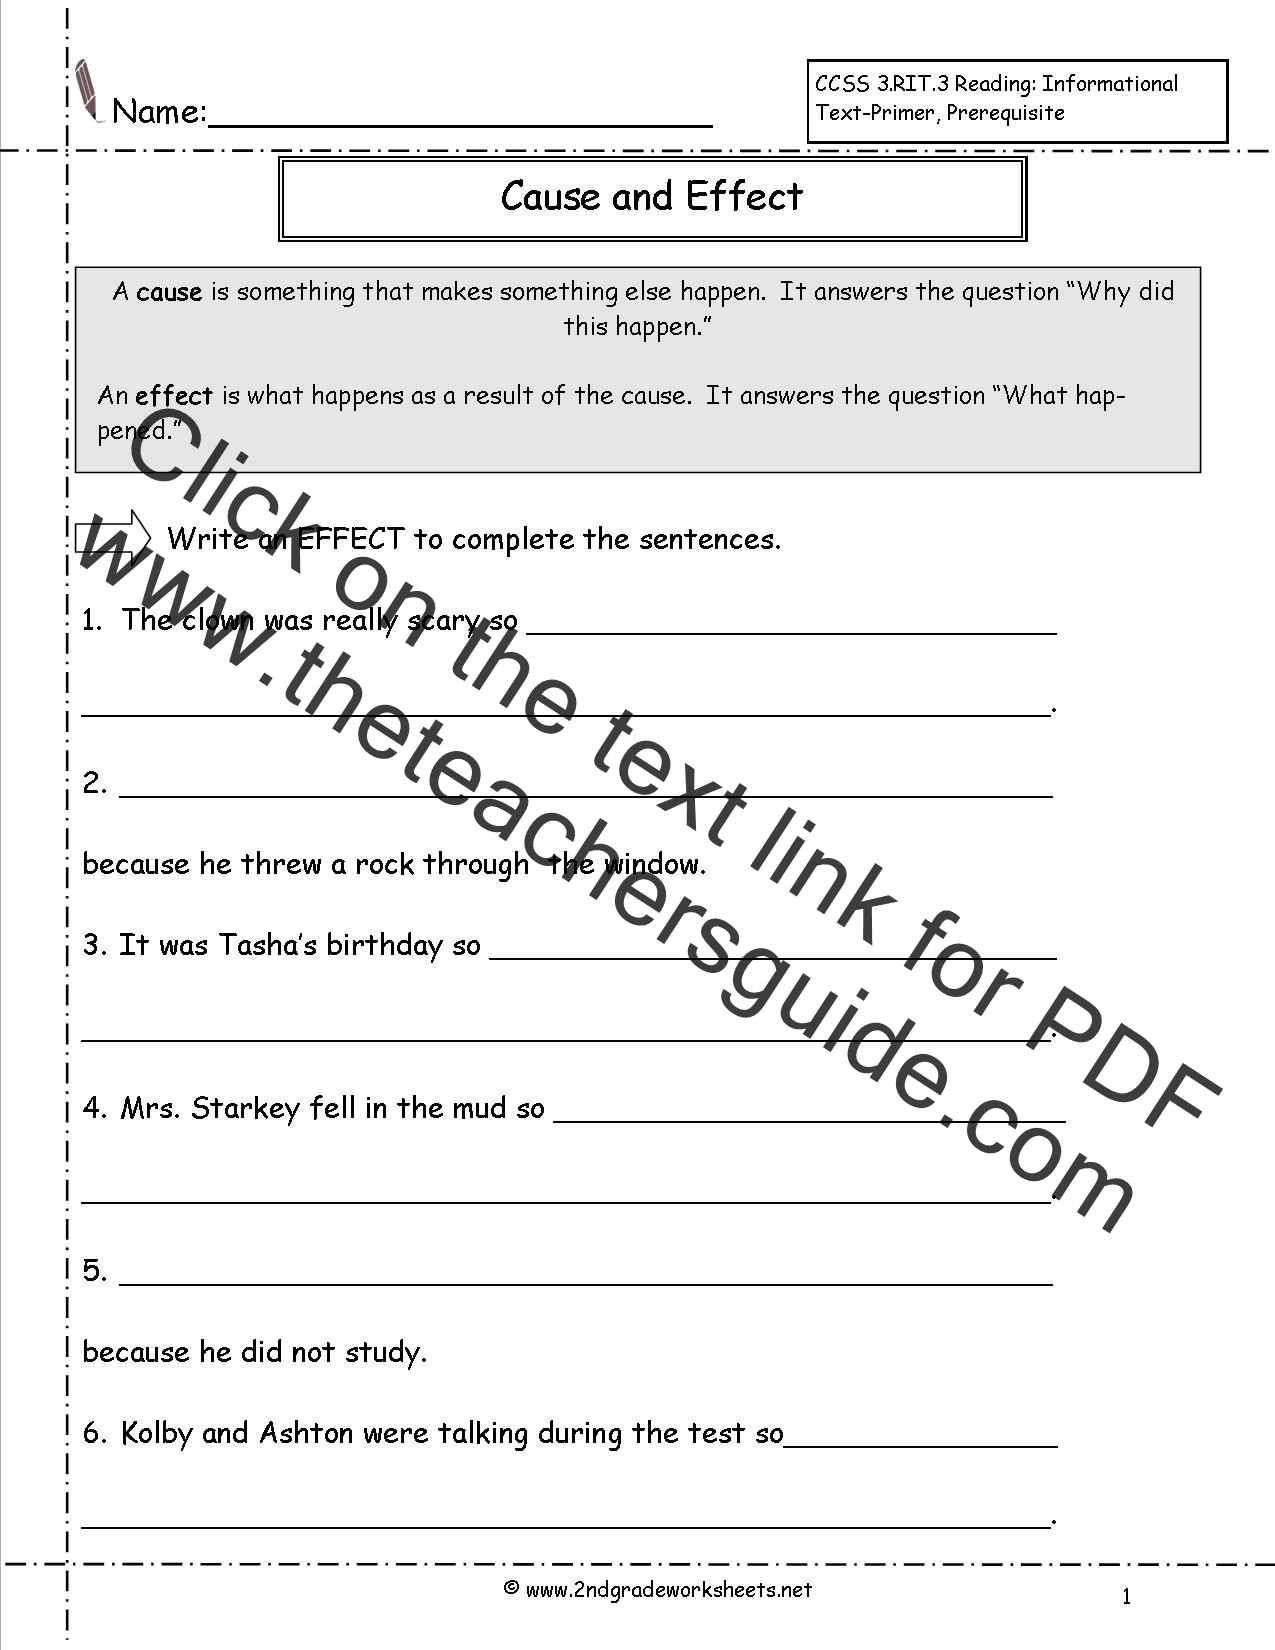 Worksheets Cause And Effect Worksheets 5th Grade cause and effect worksheets